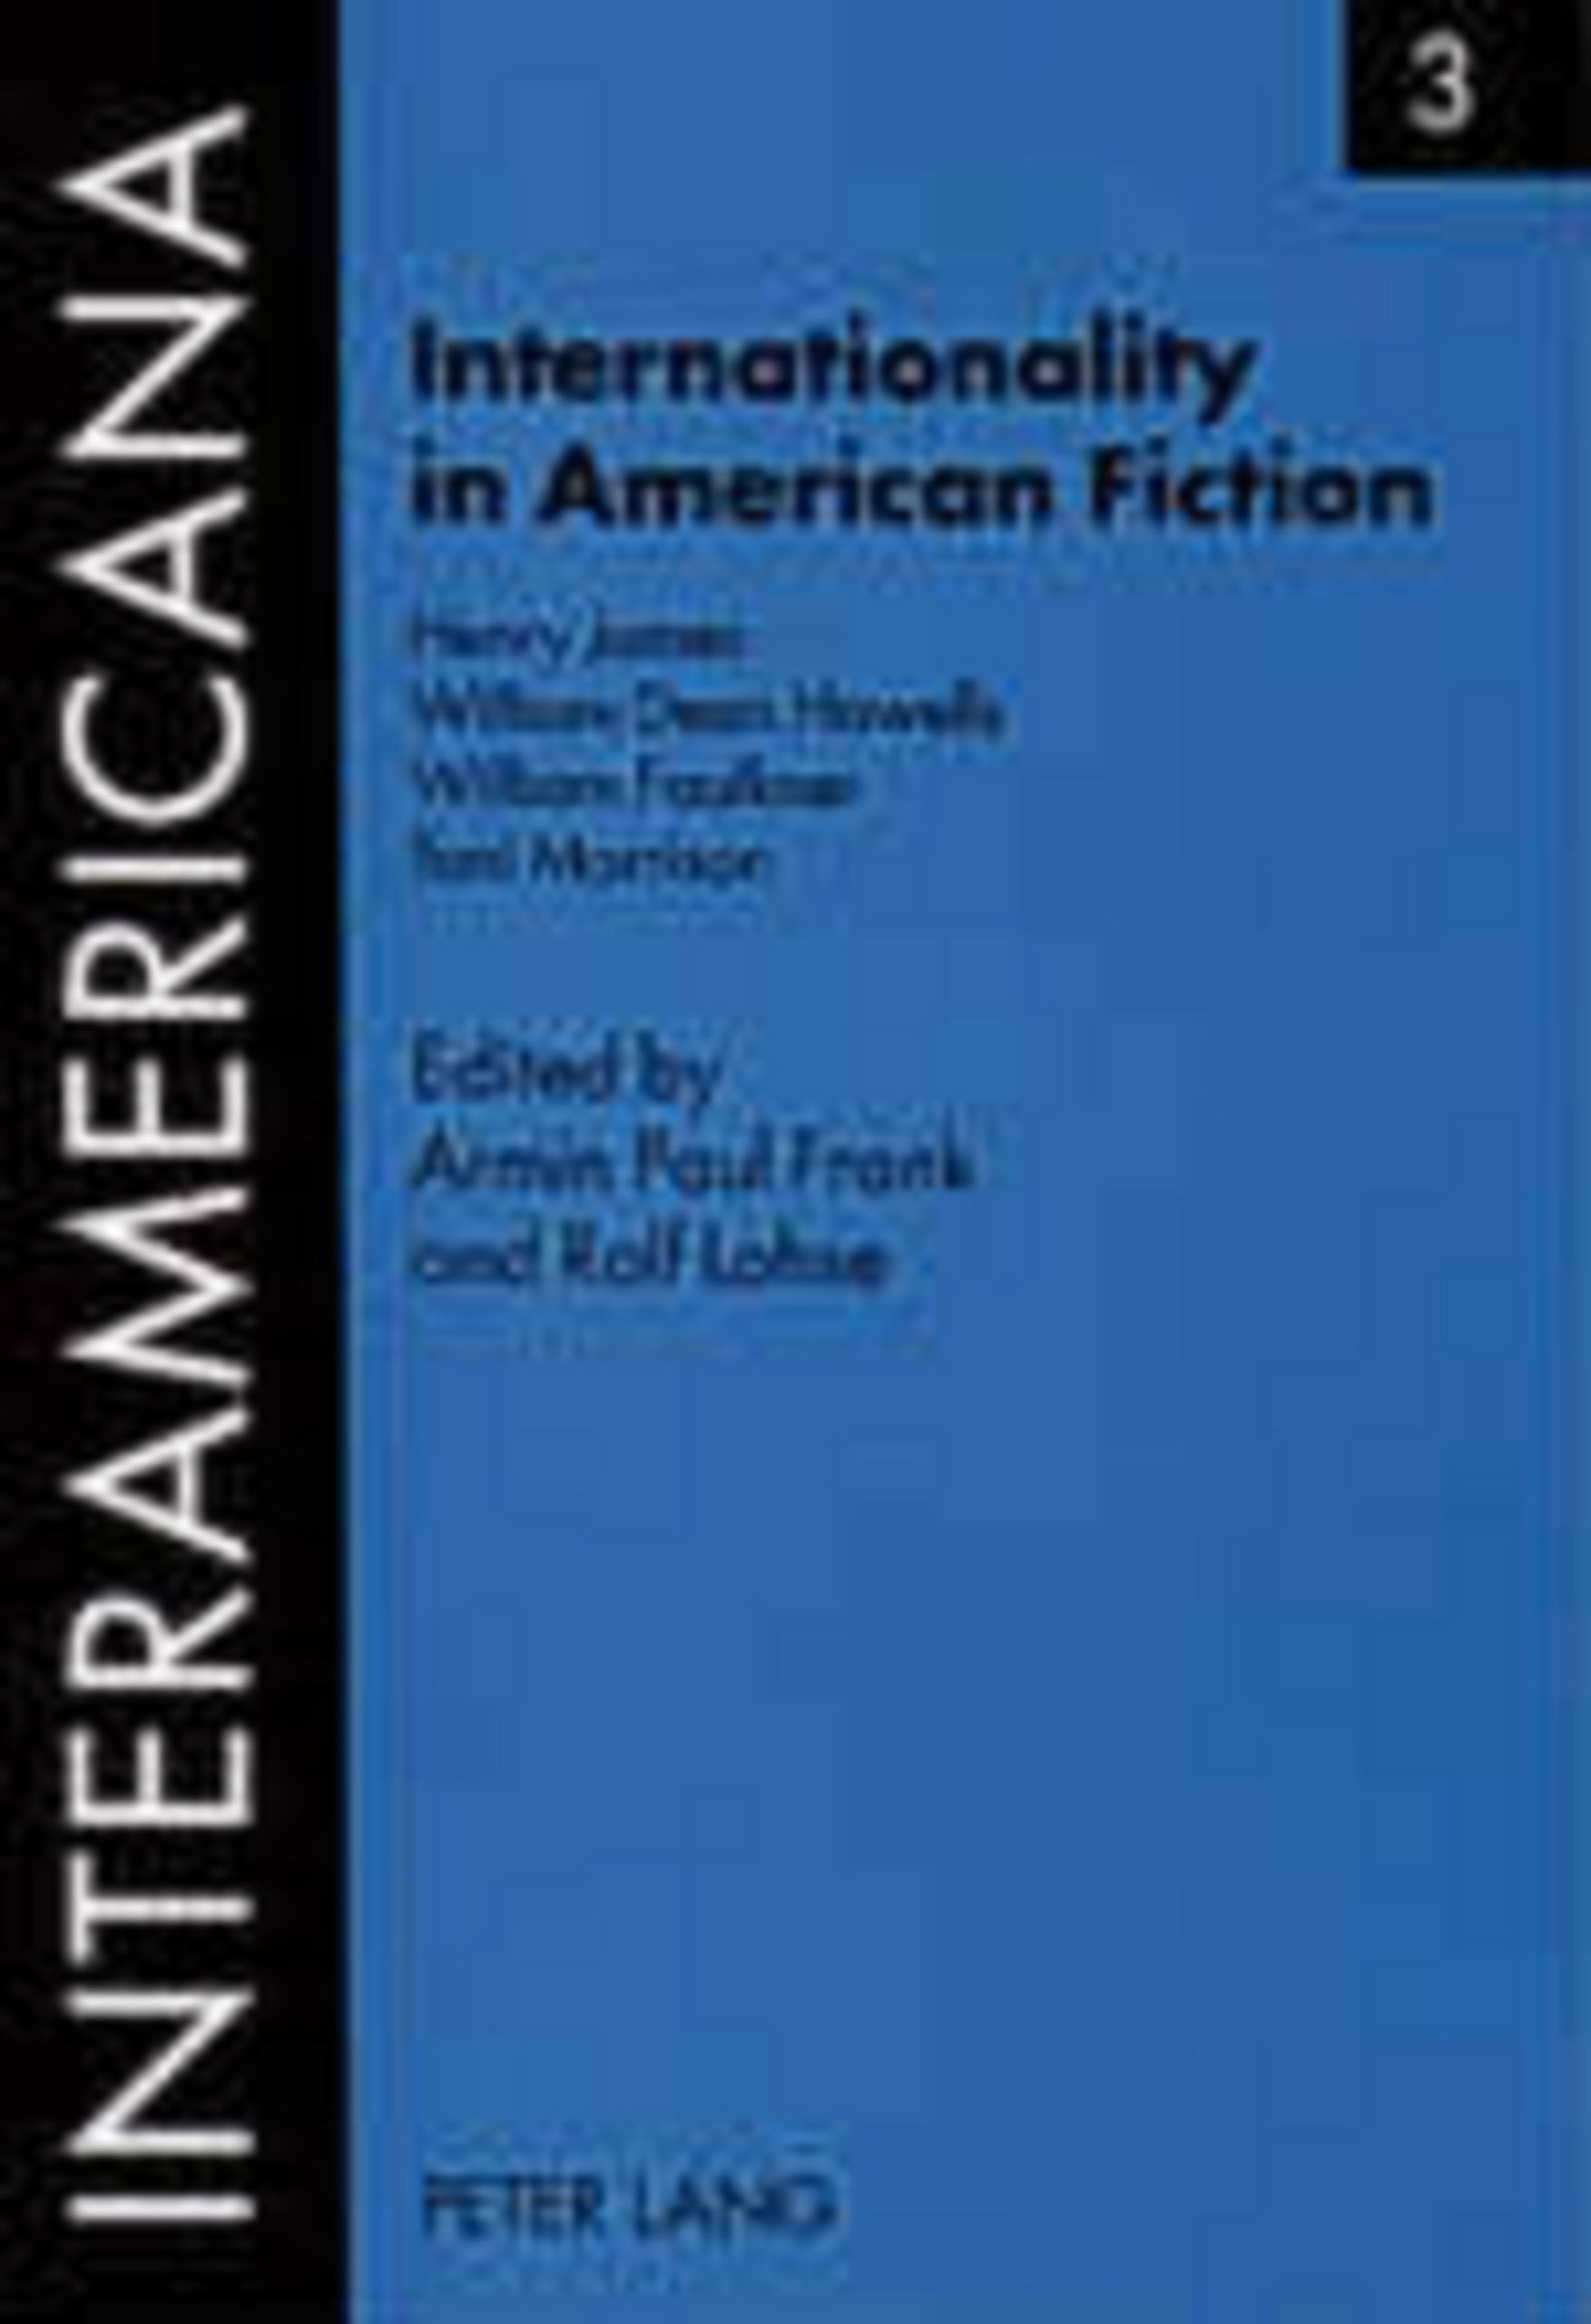 Title: Internationality in American Fiction